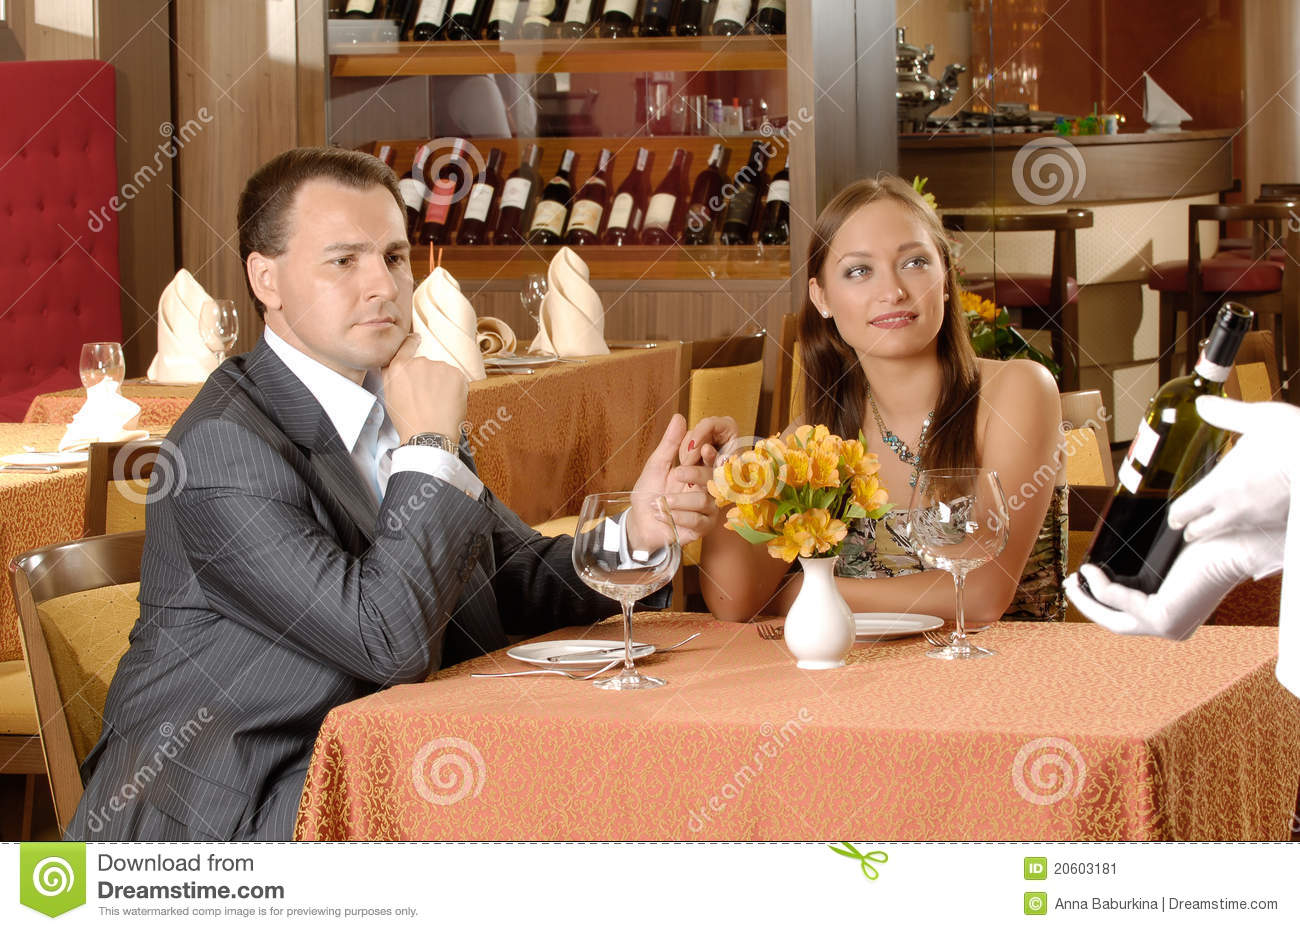 Couple In Restaurant Stock Image - Image: 20603181